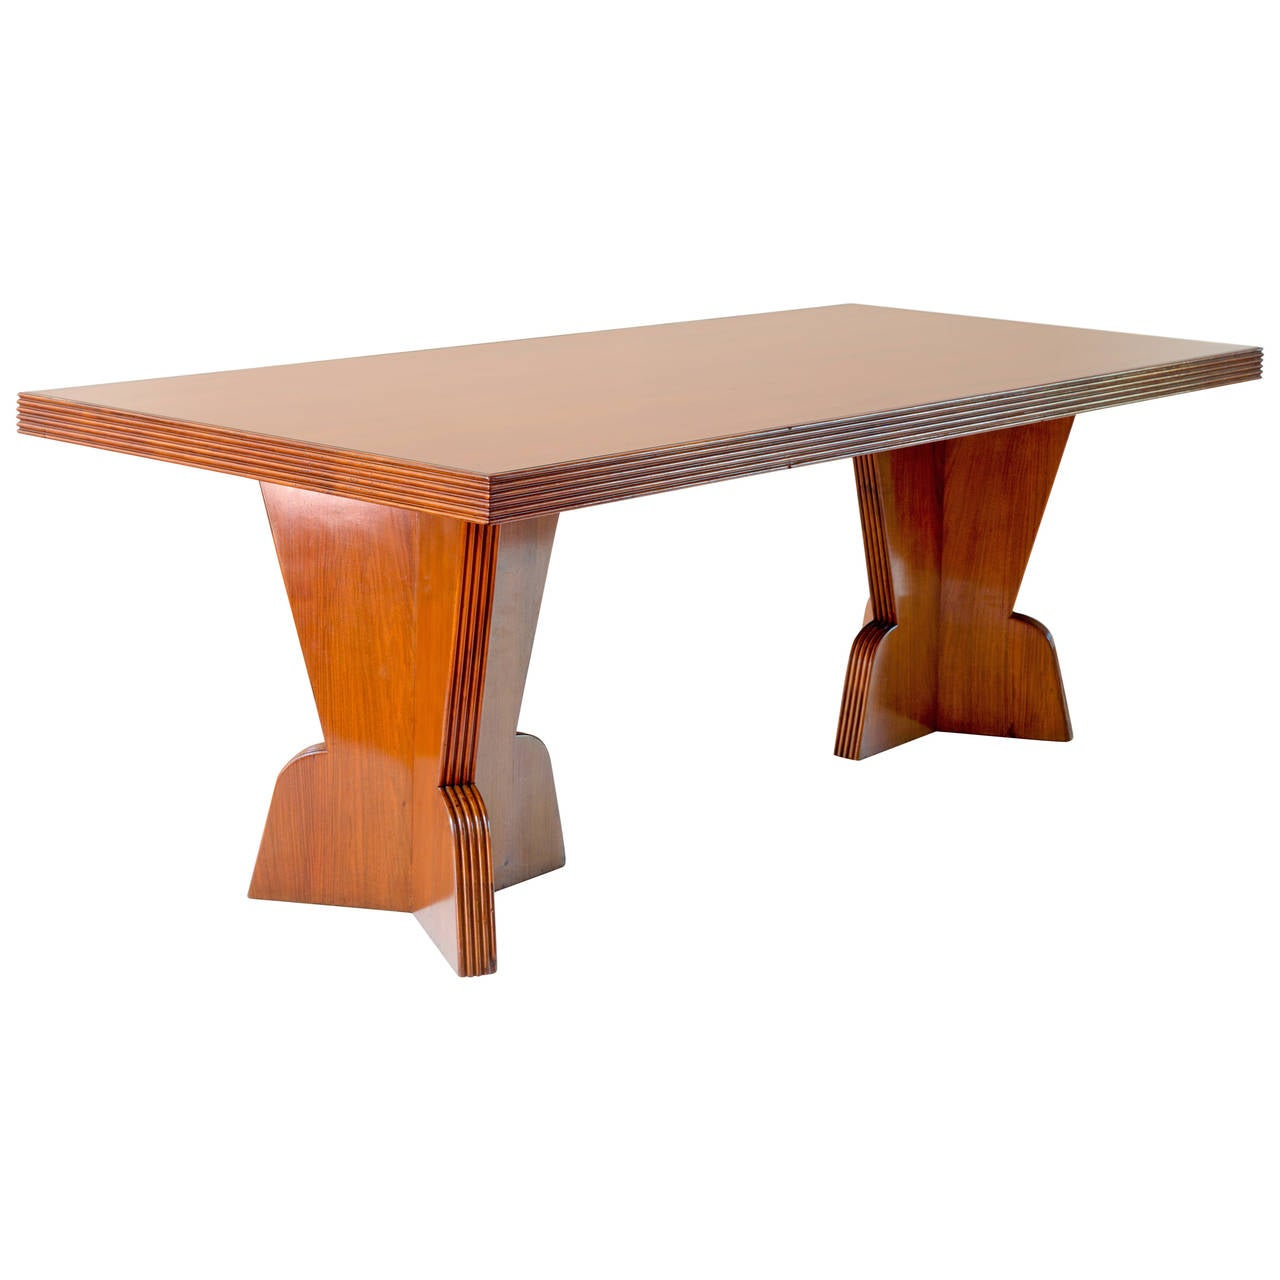 Executive Unique Gio Ponti Conference Table 1939 At 1stdibs